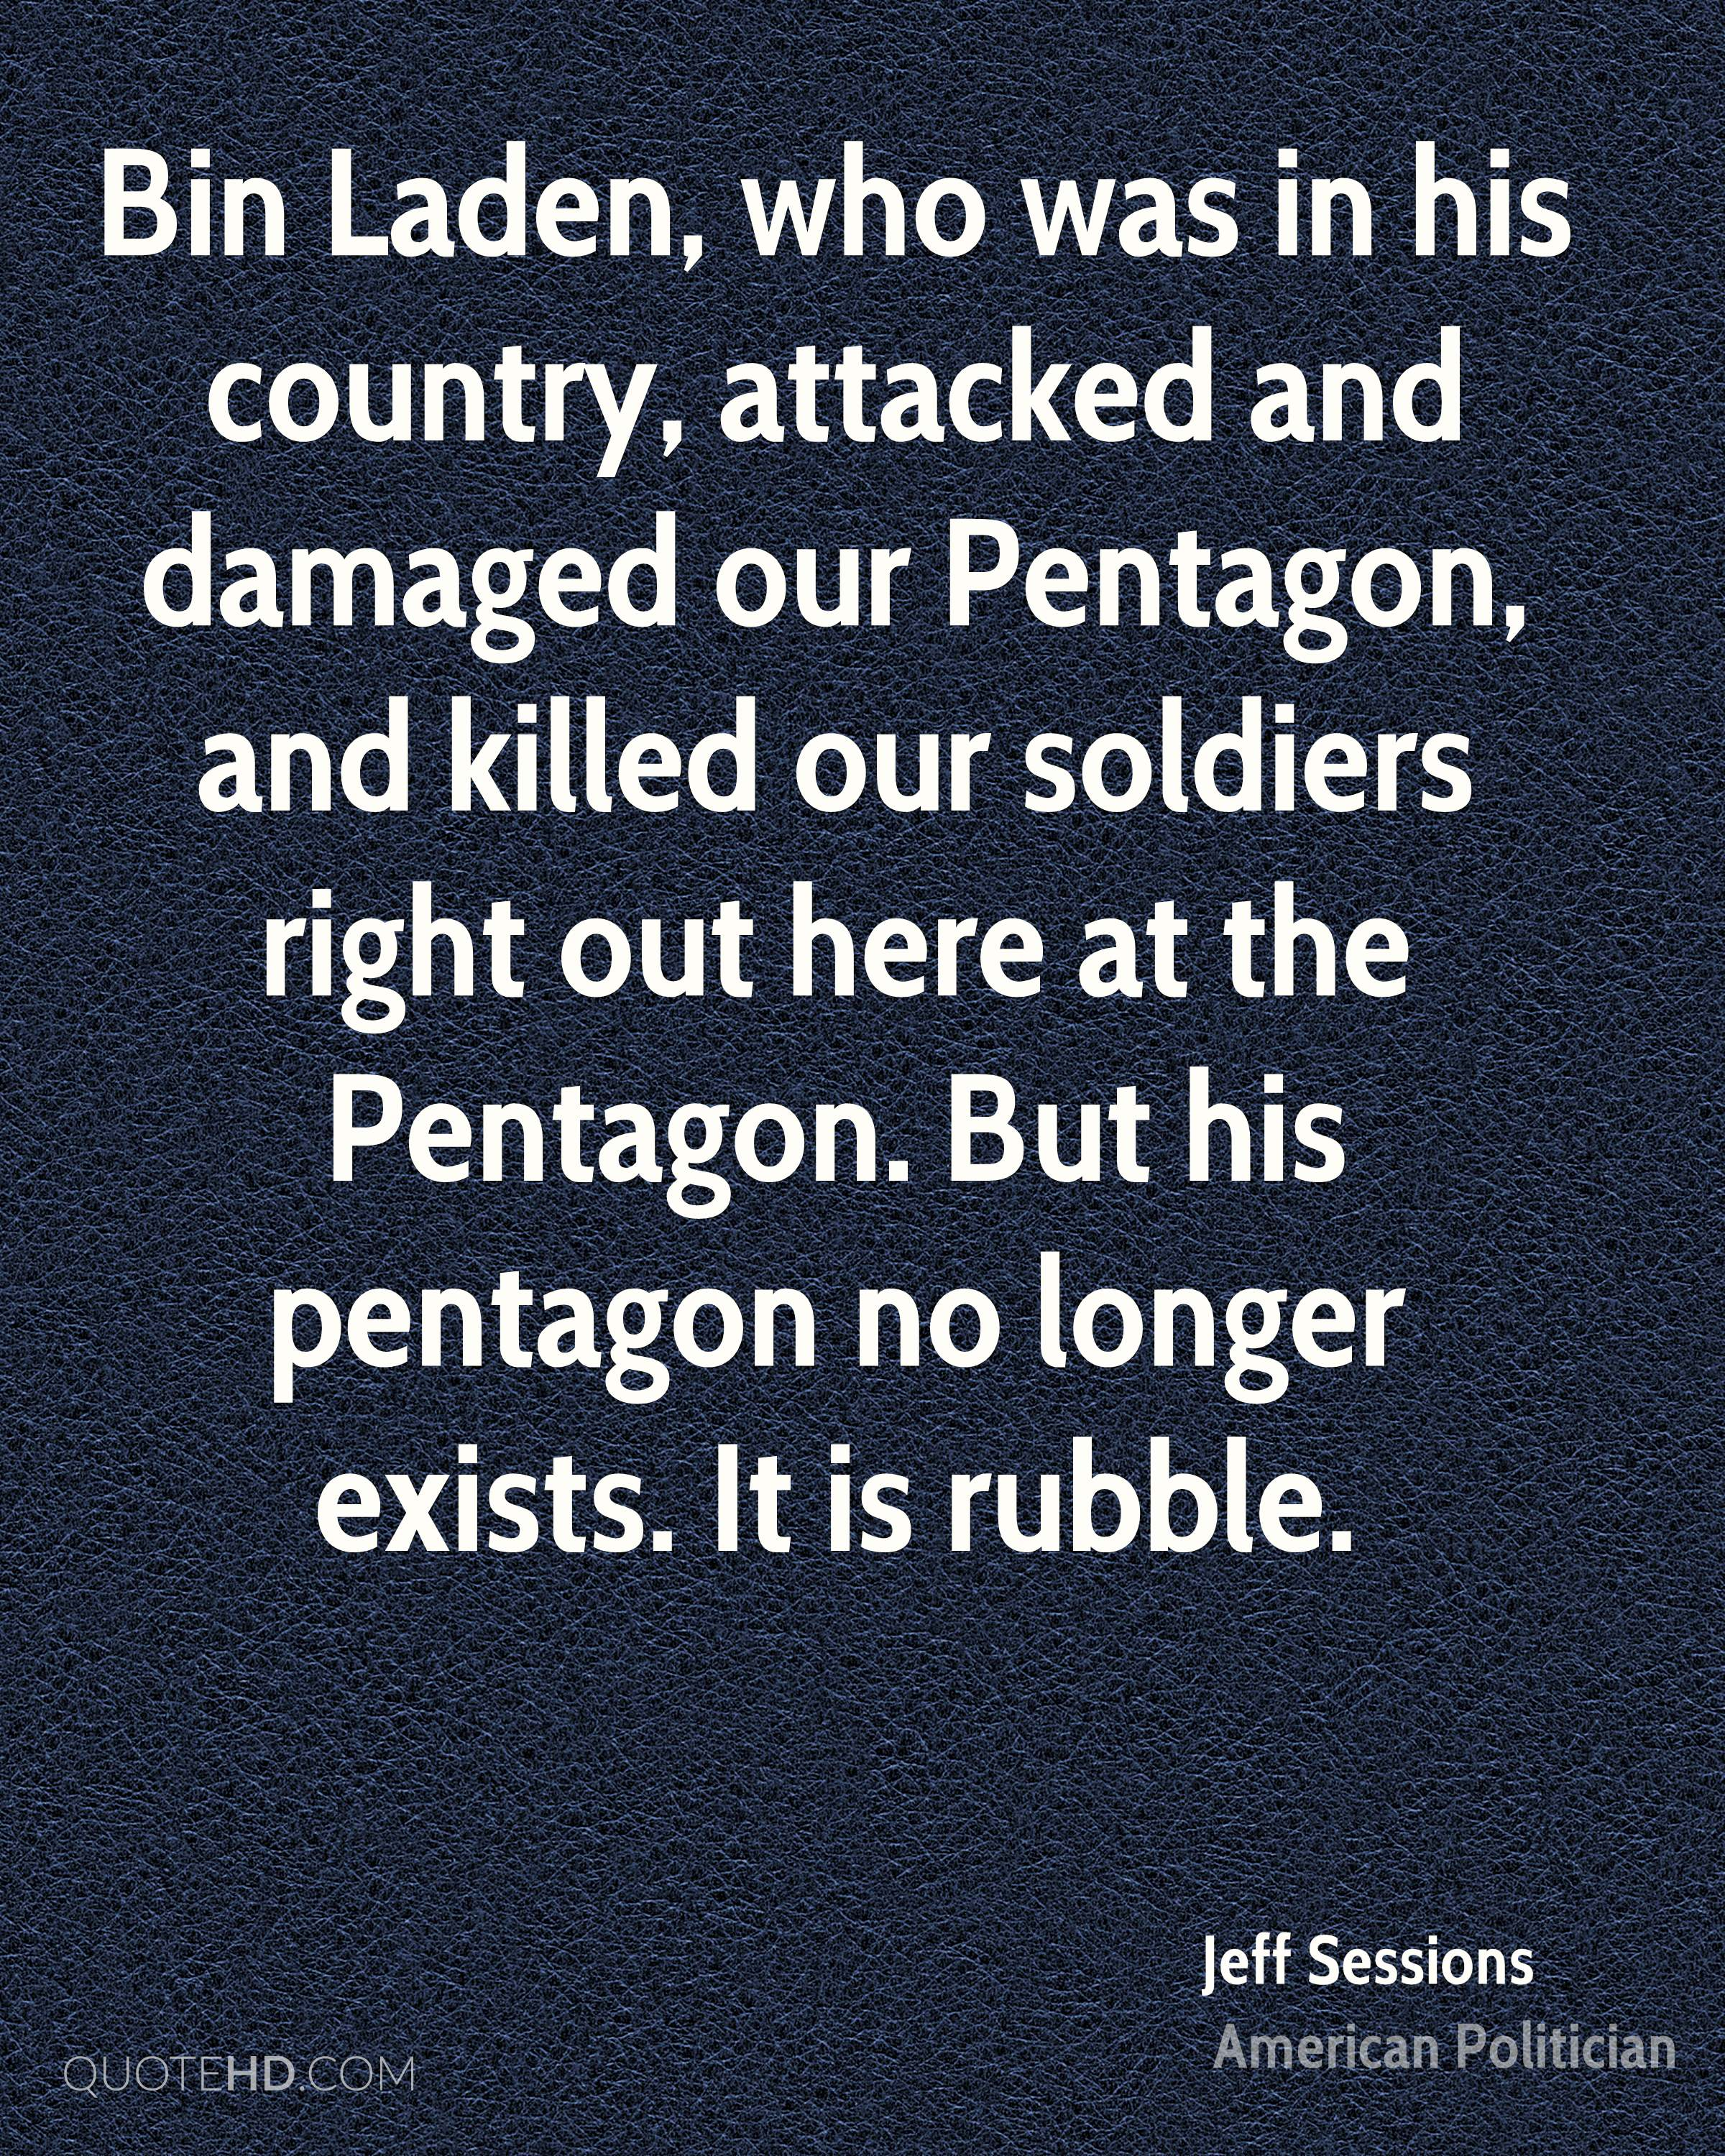 Bin Laden, who was in his country, attacked and damaged our Pentagon, and killed our soldiers right out here at the Pentagon. But his pentagon no longer exists. It is rubble.